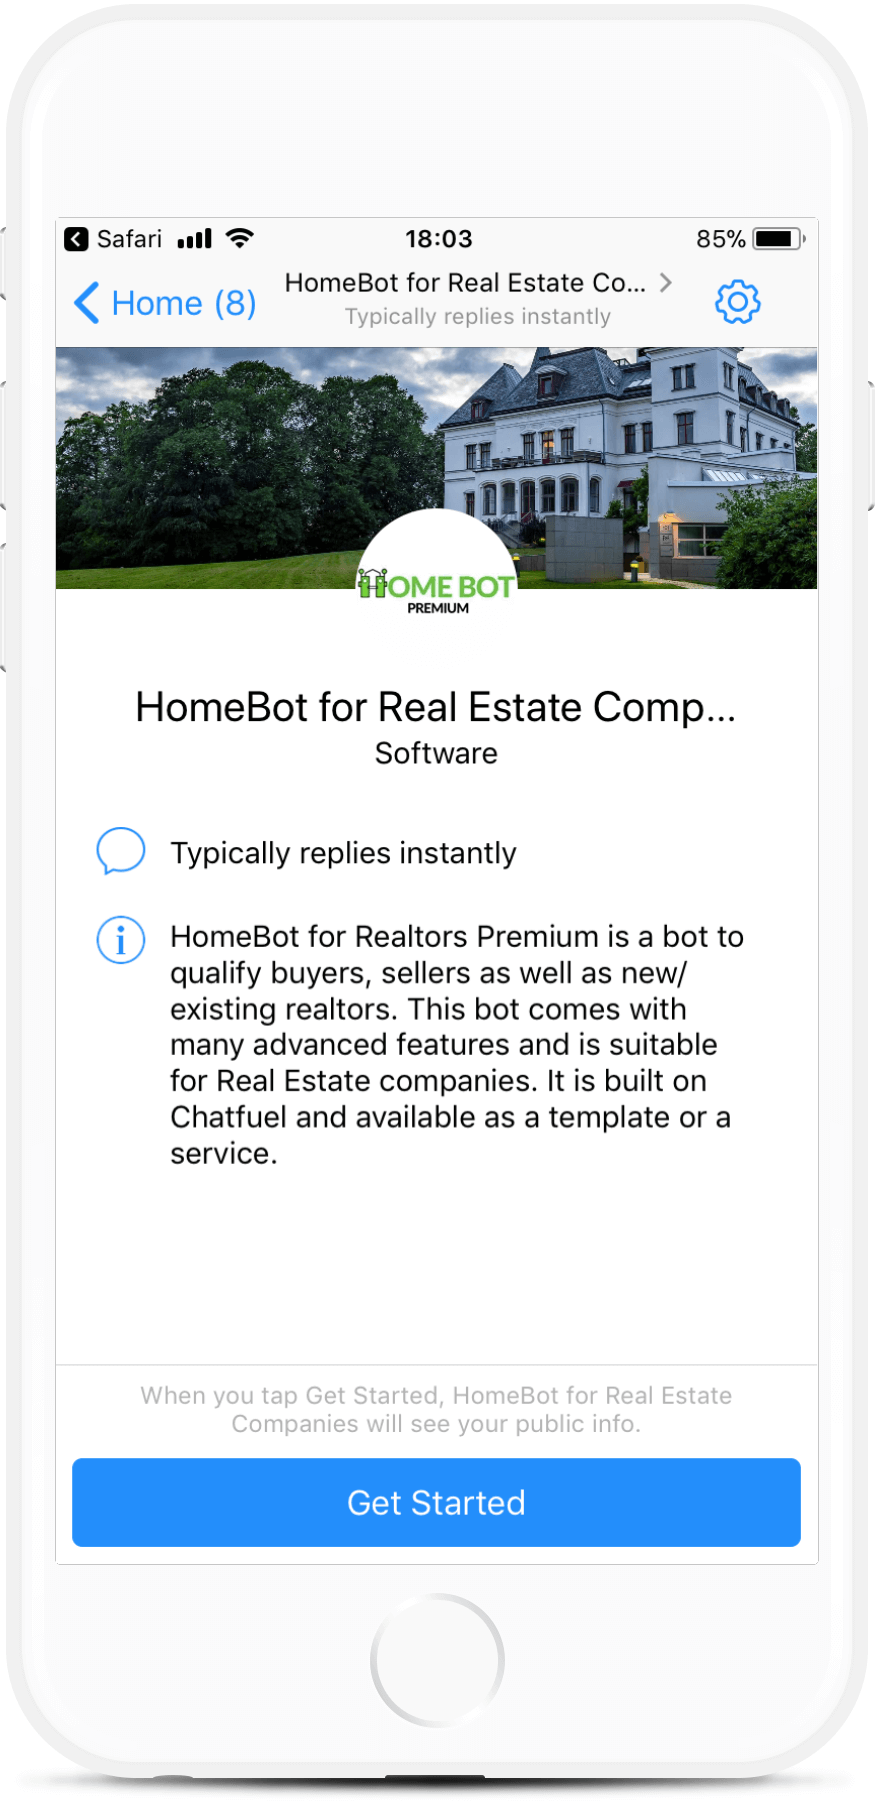 HomeBot for Realtors - Premium bot screenshot